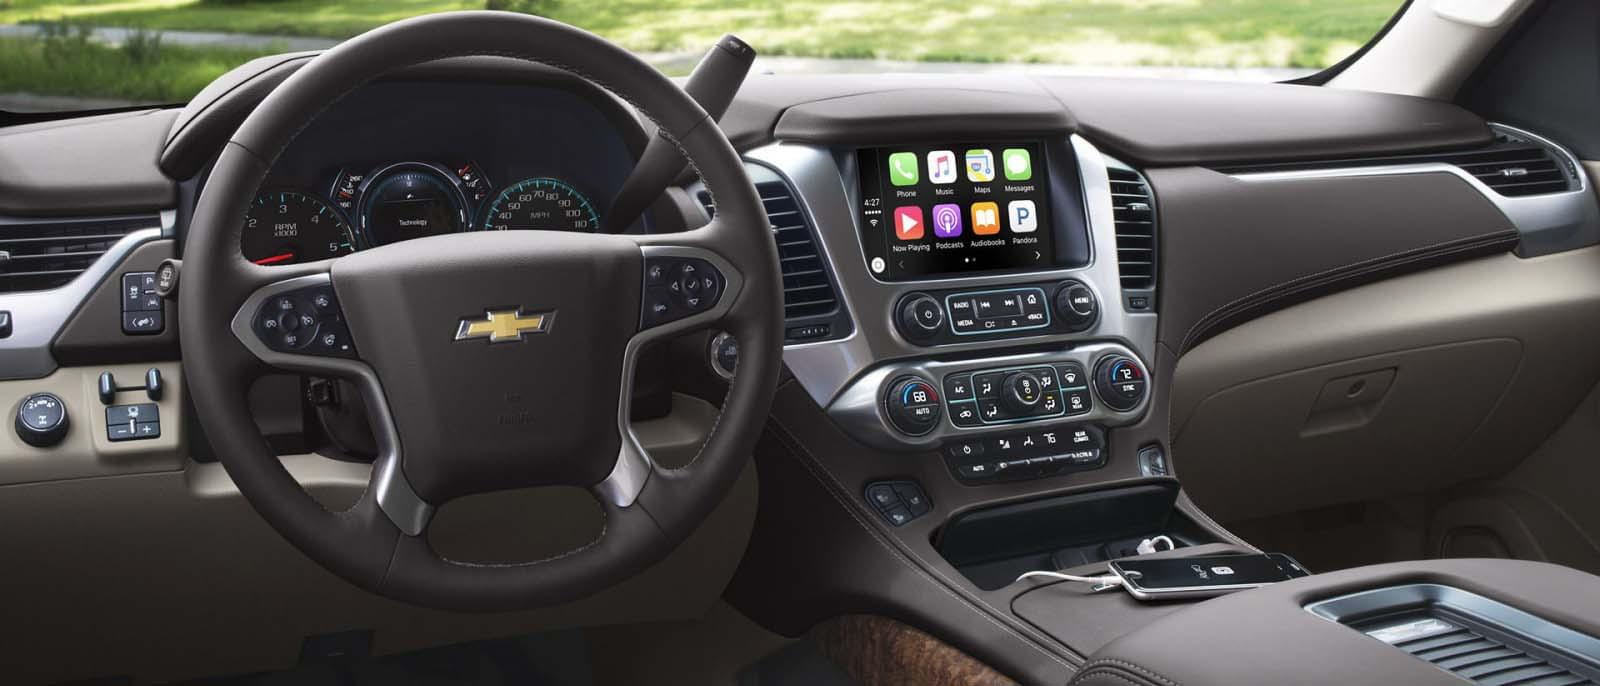 2017 Chevy Suburban Dash